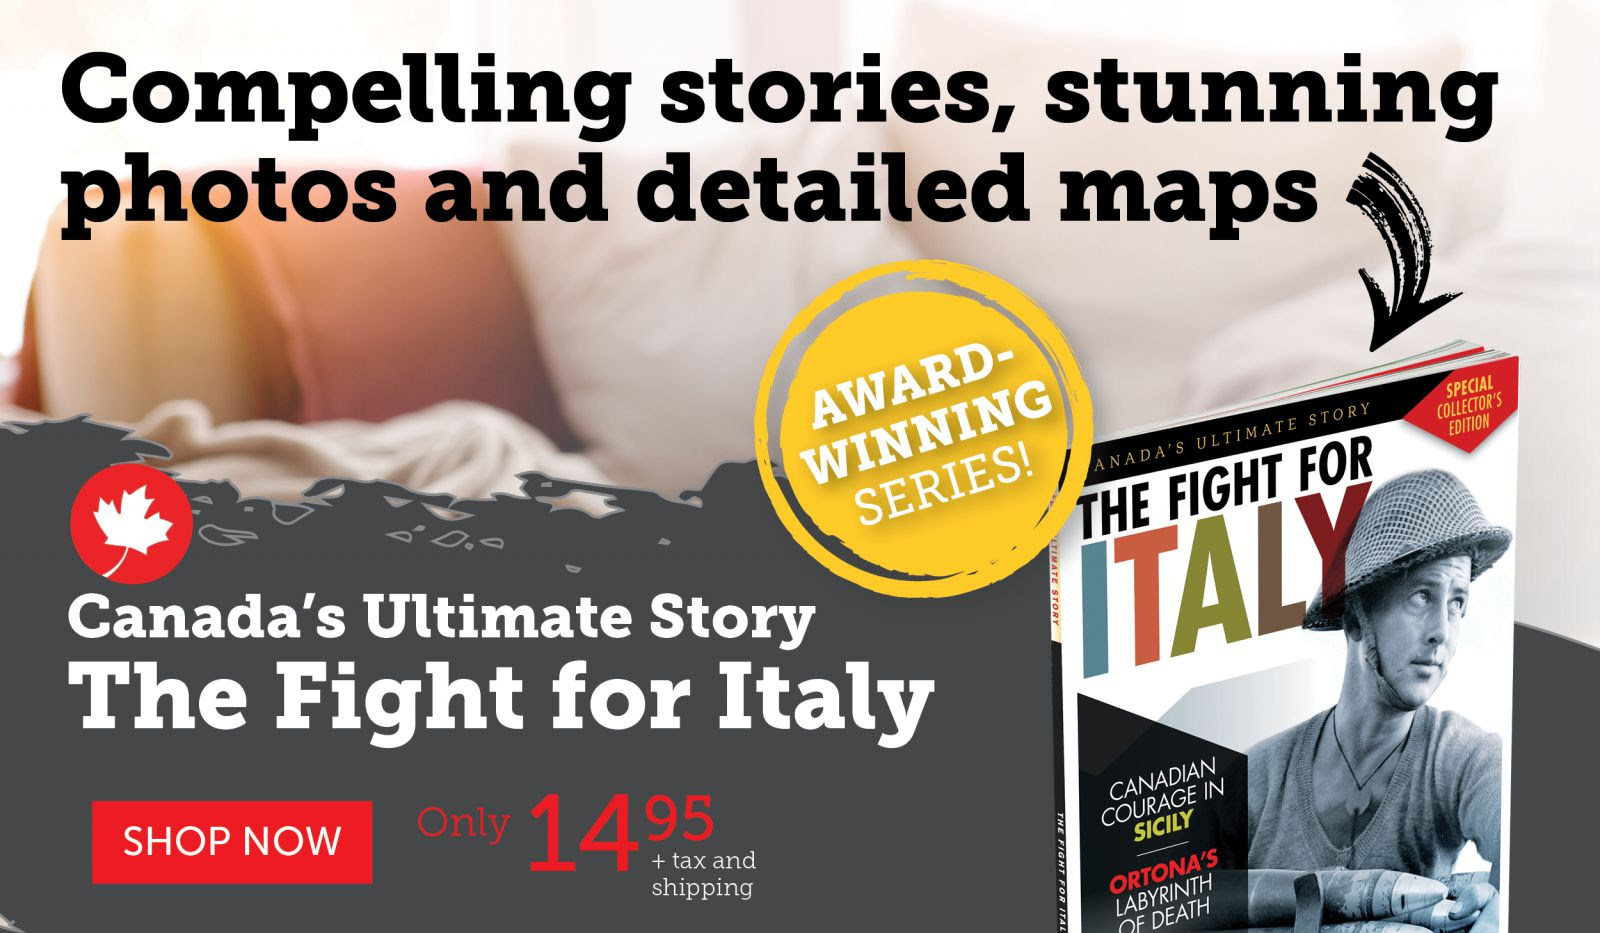 The Fight for Italy only $14.95!